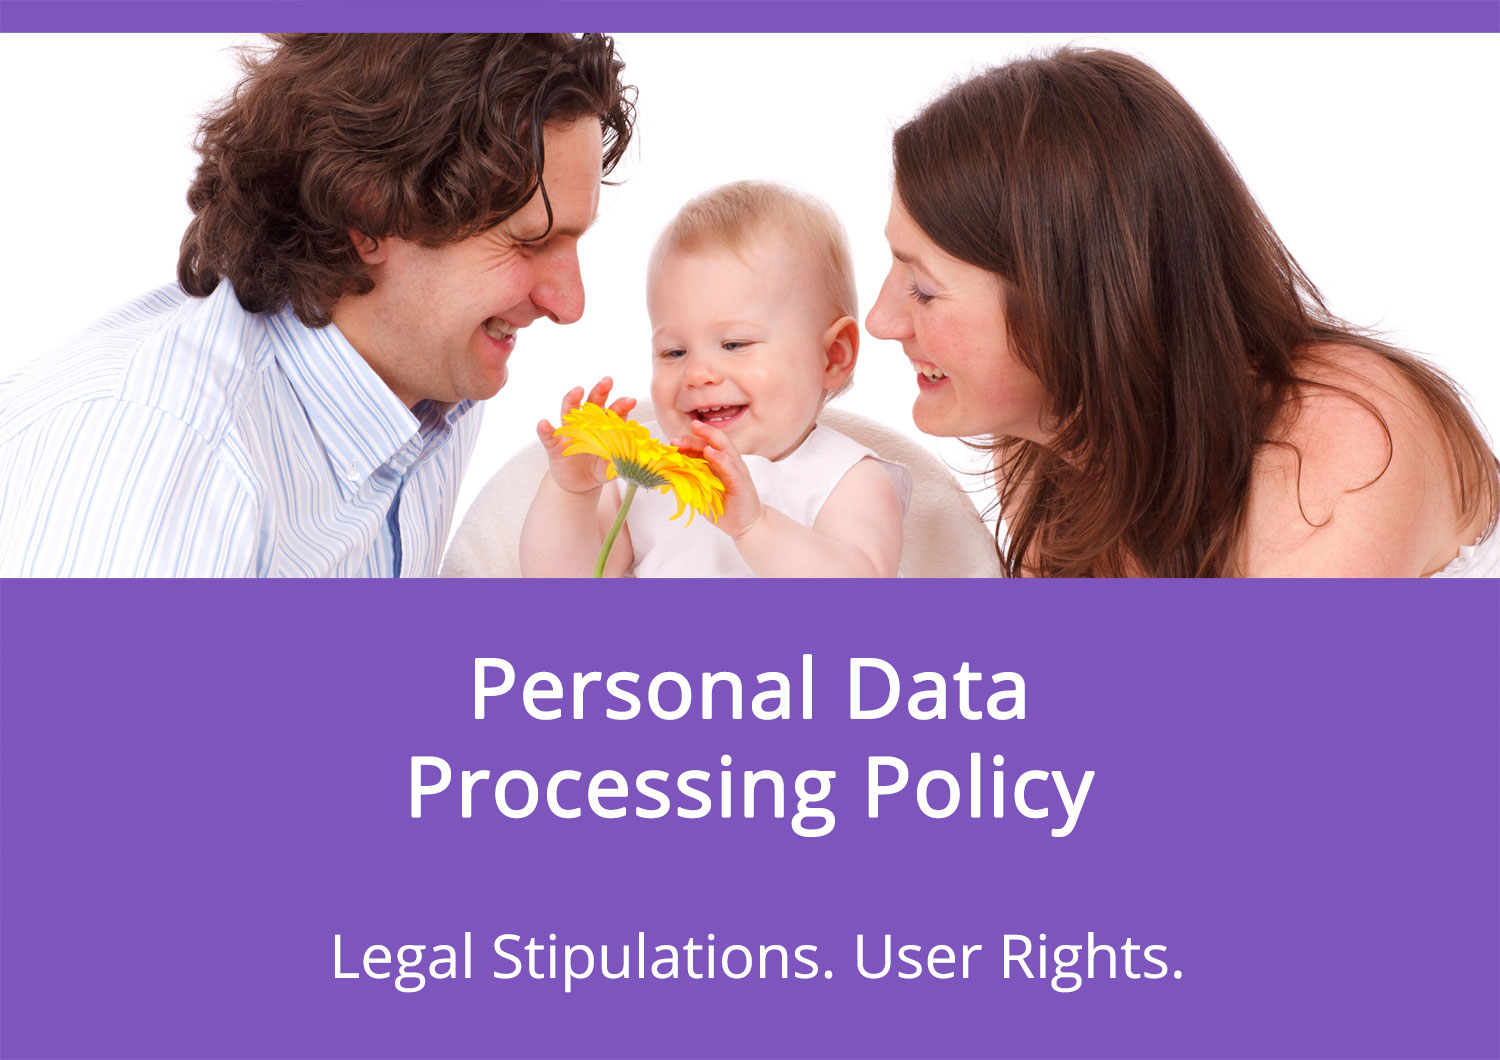 Personal Data Processing Policy